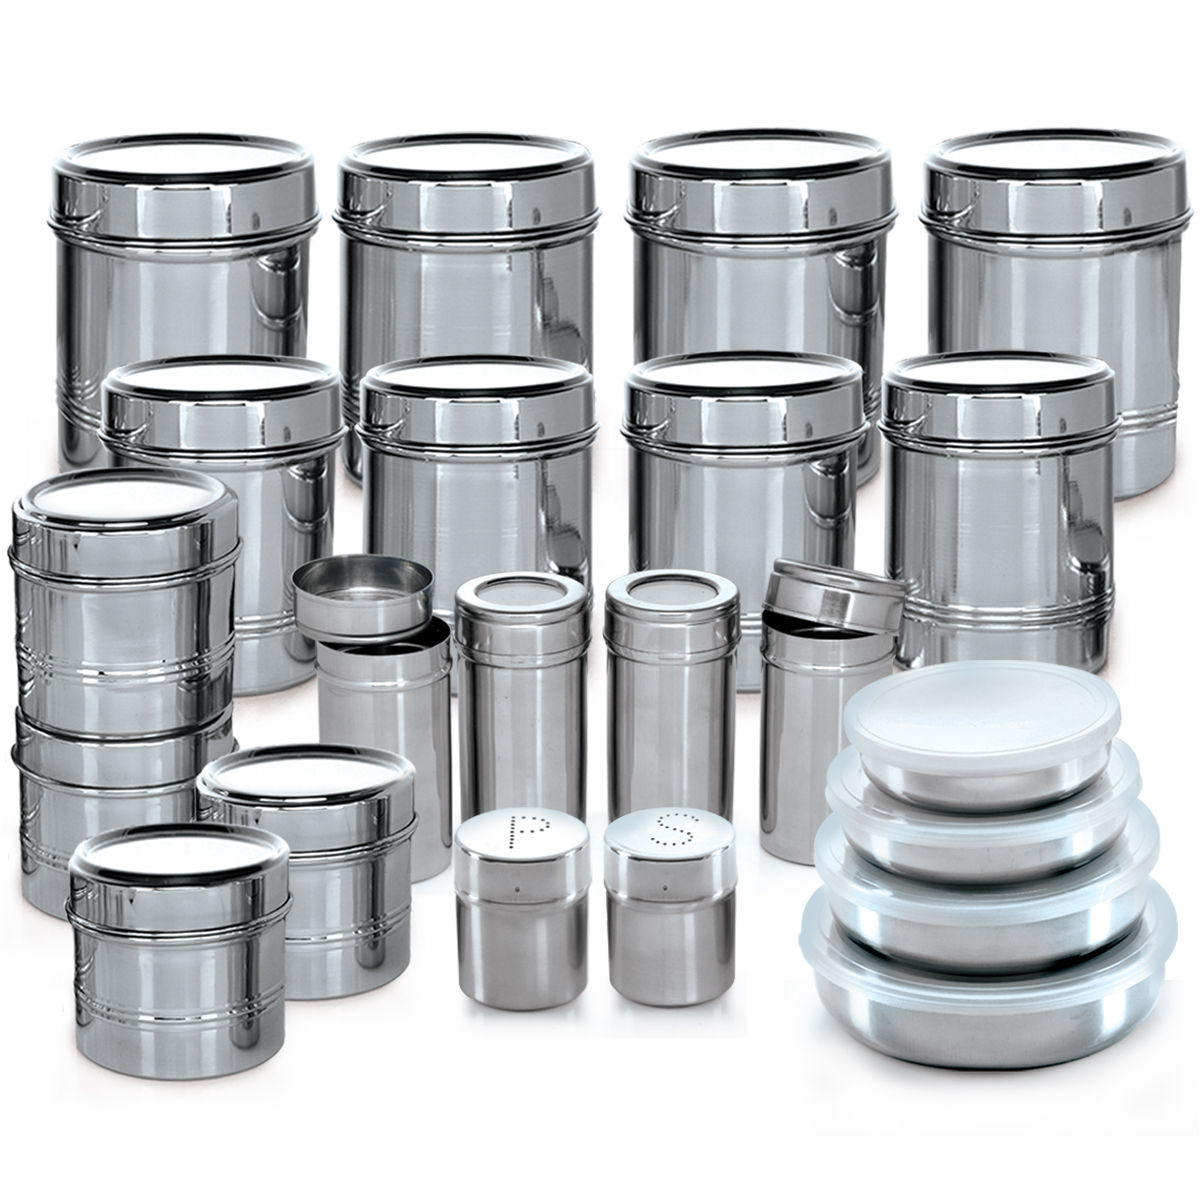 Buy Branded 44 Pcs Stainless Steel Storage Set Online At Best Price